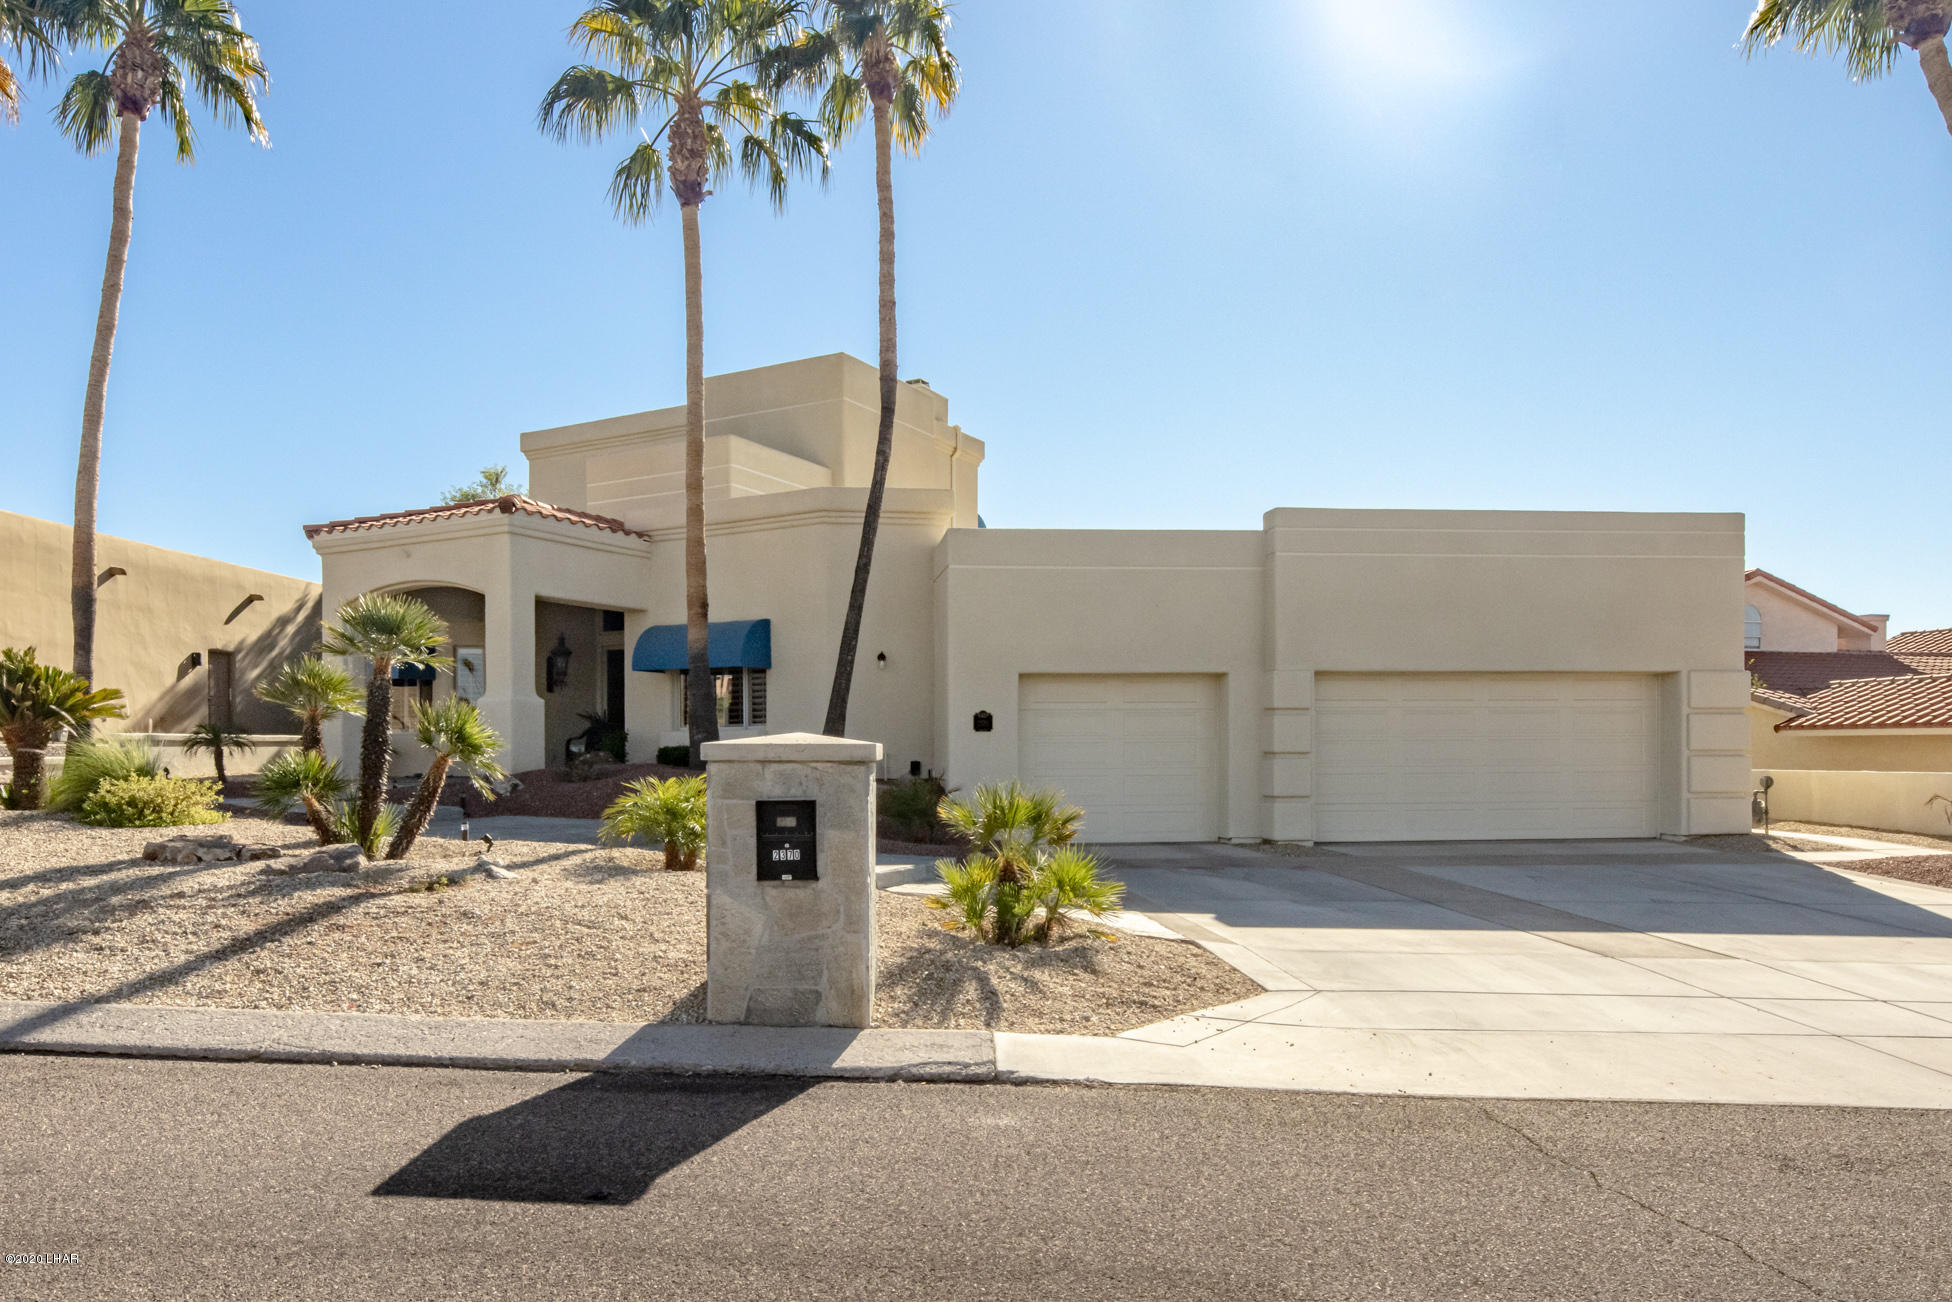 Photo of 2370 Green Dr, Lake Havasu City, AZ 86406